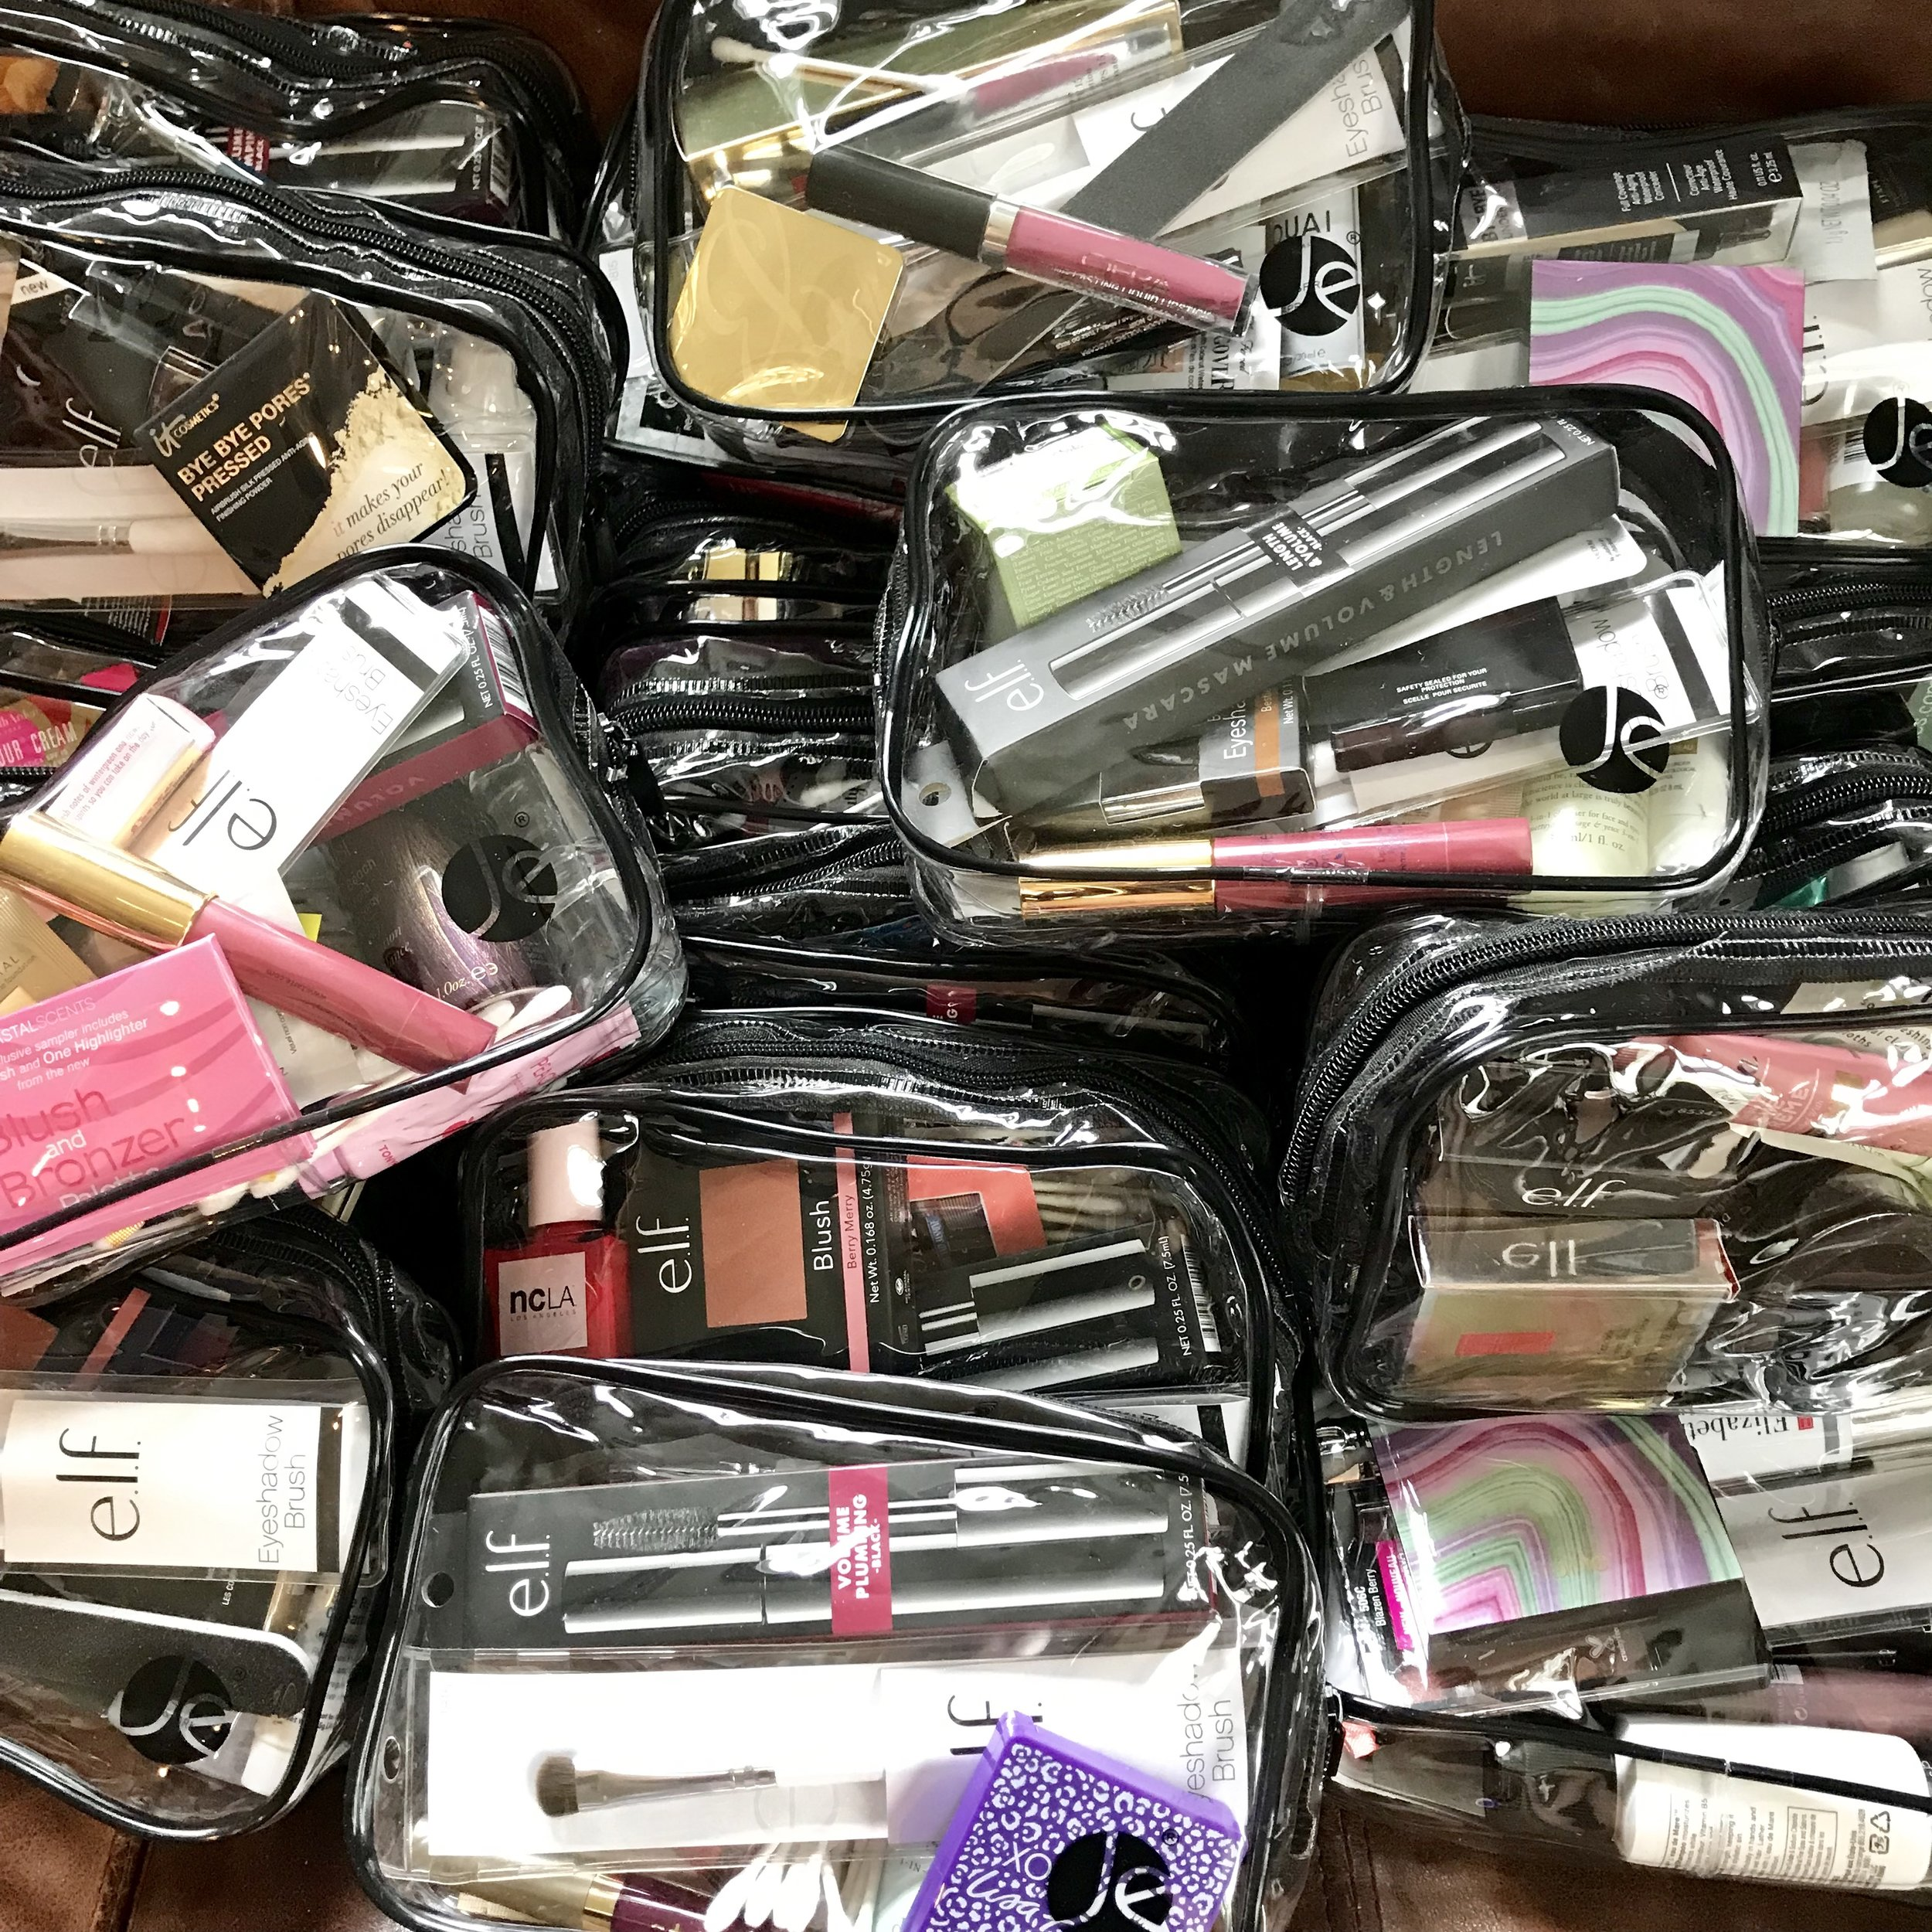 We supplemented the many donations with purchased makeup through financial support from friends.